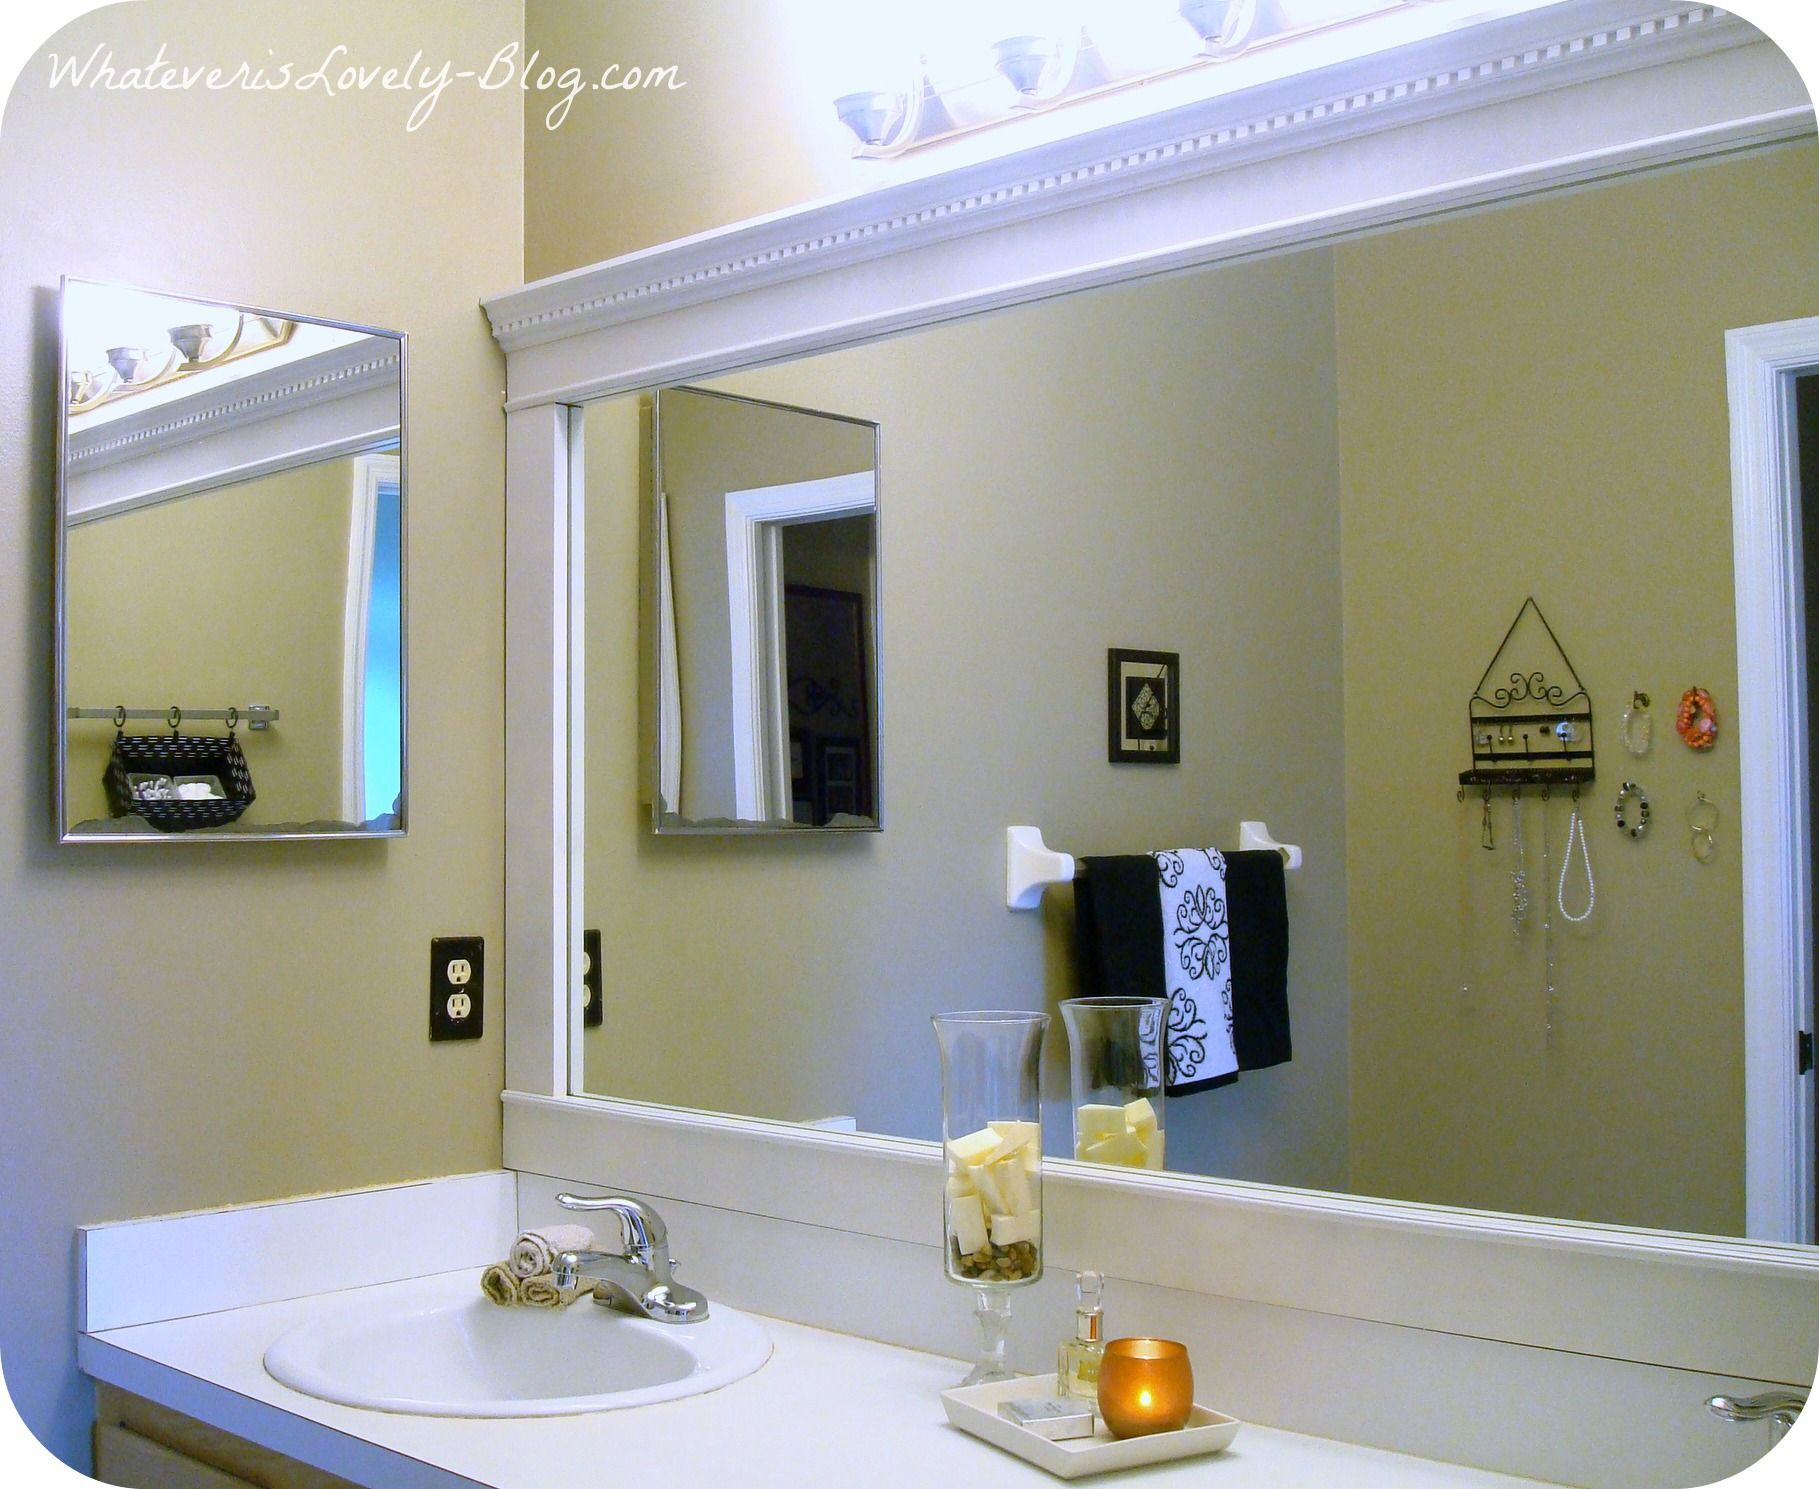 How to frame bathroom mirrors - A Reason Why You Shouldn T Demolish Your Old Barn Just Yet